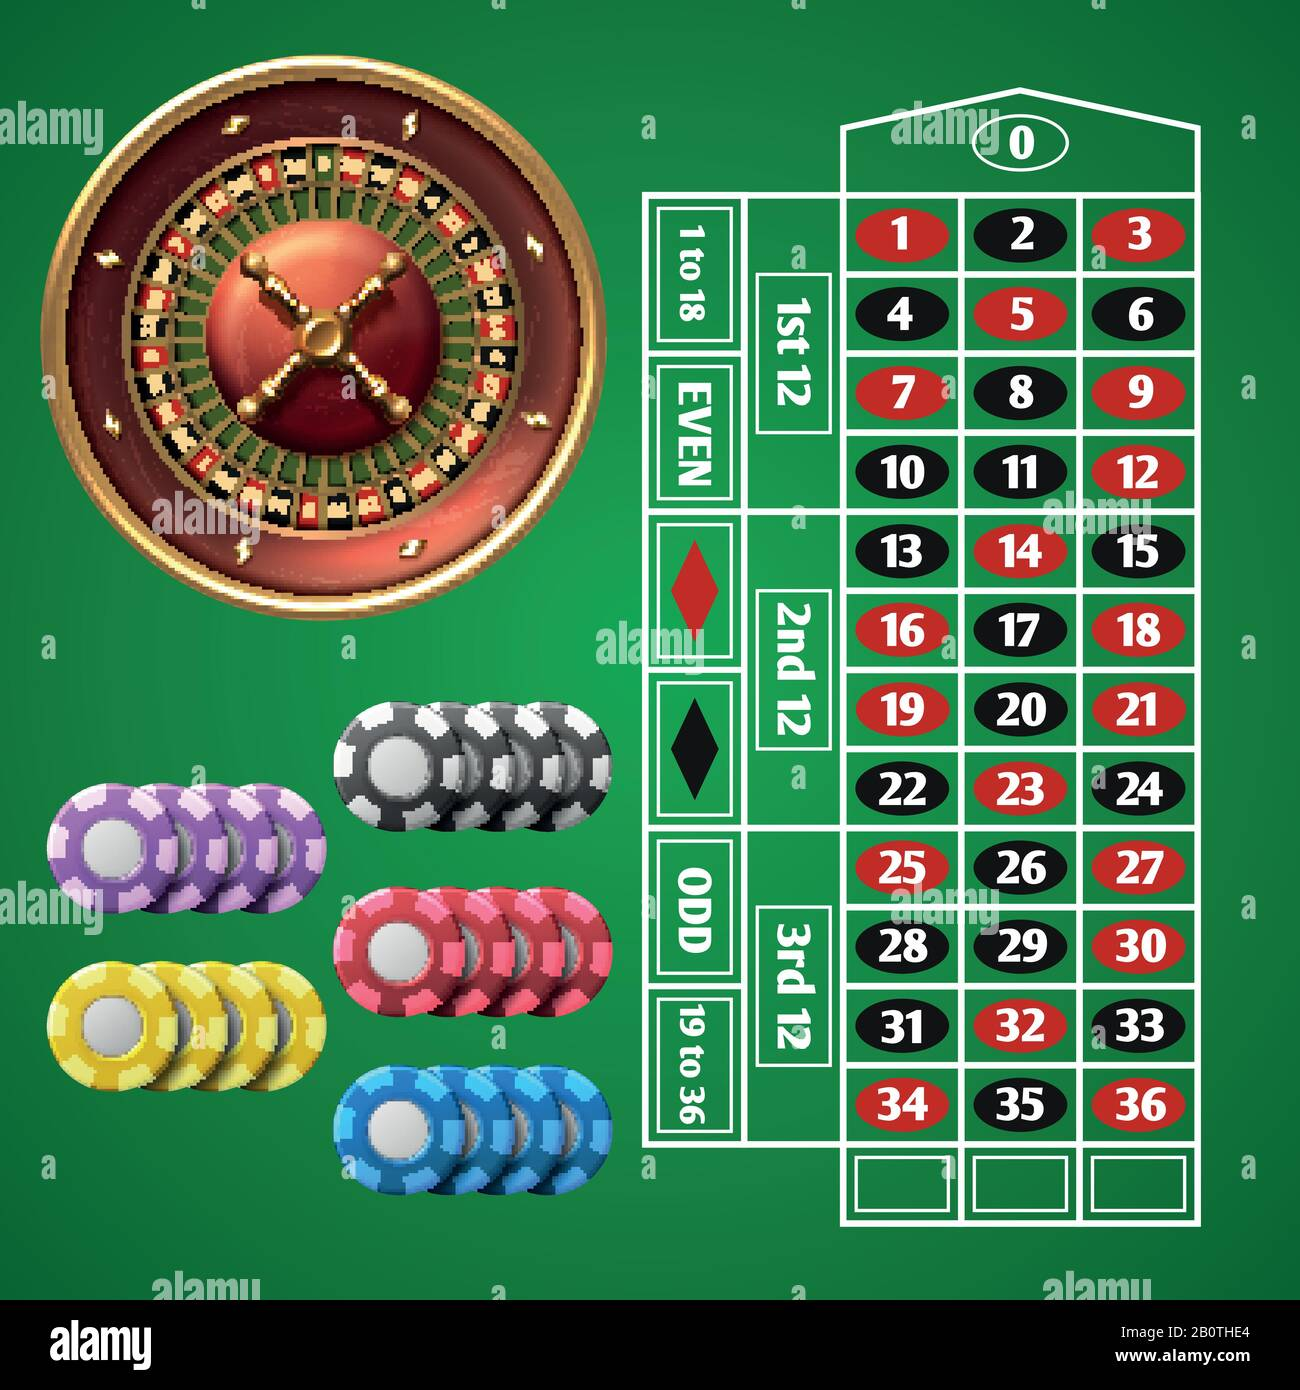 Online Casino Roulette And Gambling Table With Chips Vector Set Illustration Design Roulette Table For Casino Stock Vector Image Art Alamy